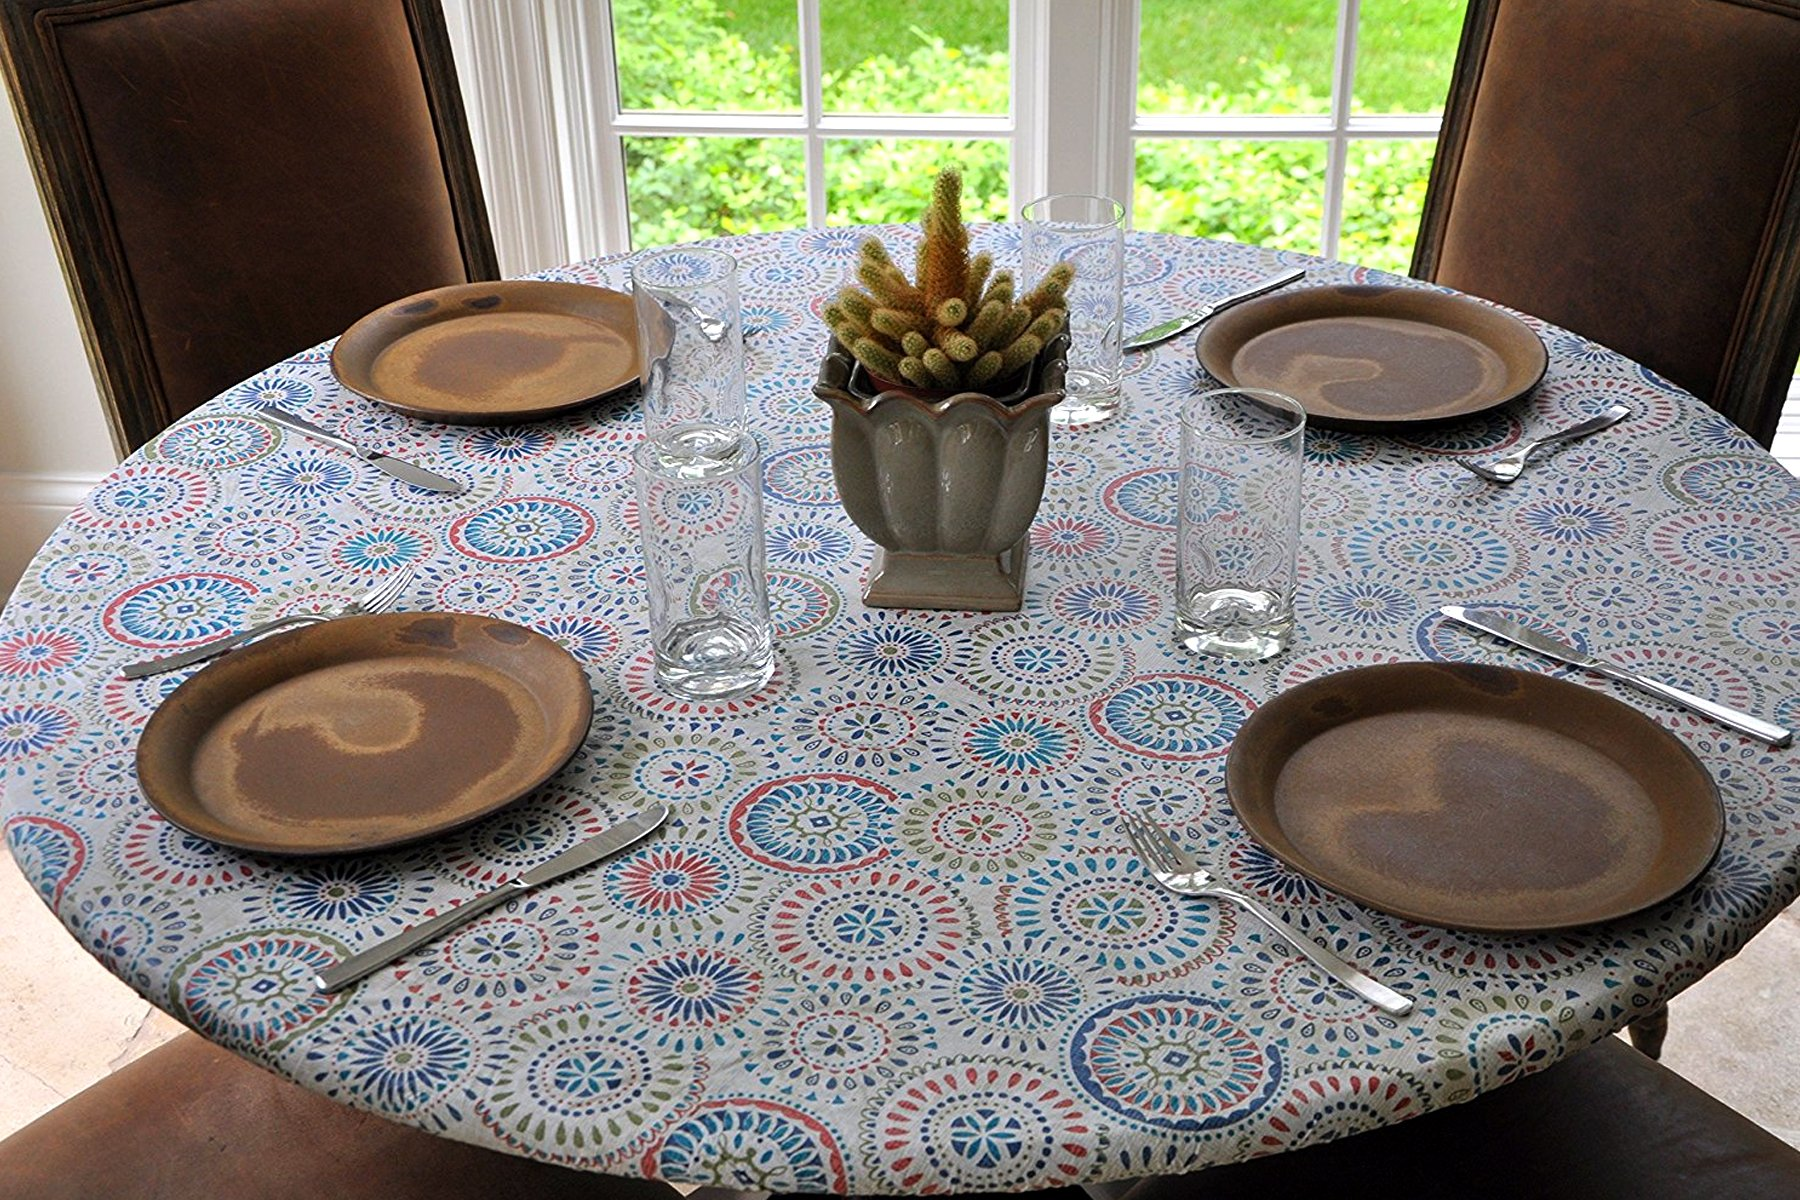 "Elastic Flannel Backed Vinyl Fitted Table Cover MULTI-COLOR GEOMETRIC Pattern - Large Round - Fits tables 45"" to 58"" round - Elastic Edged"